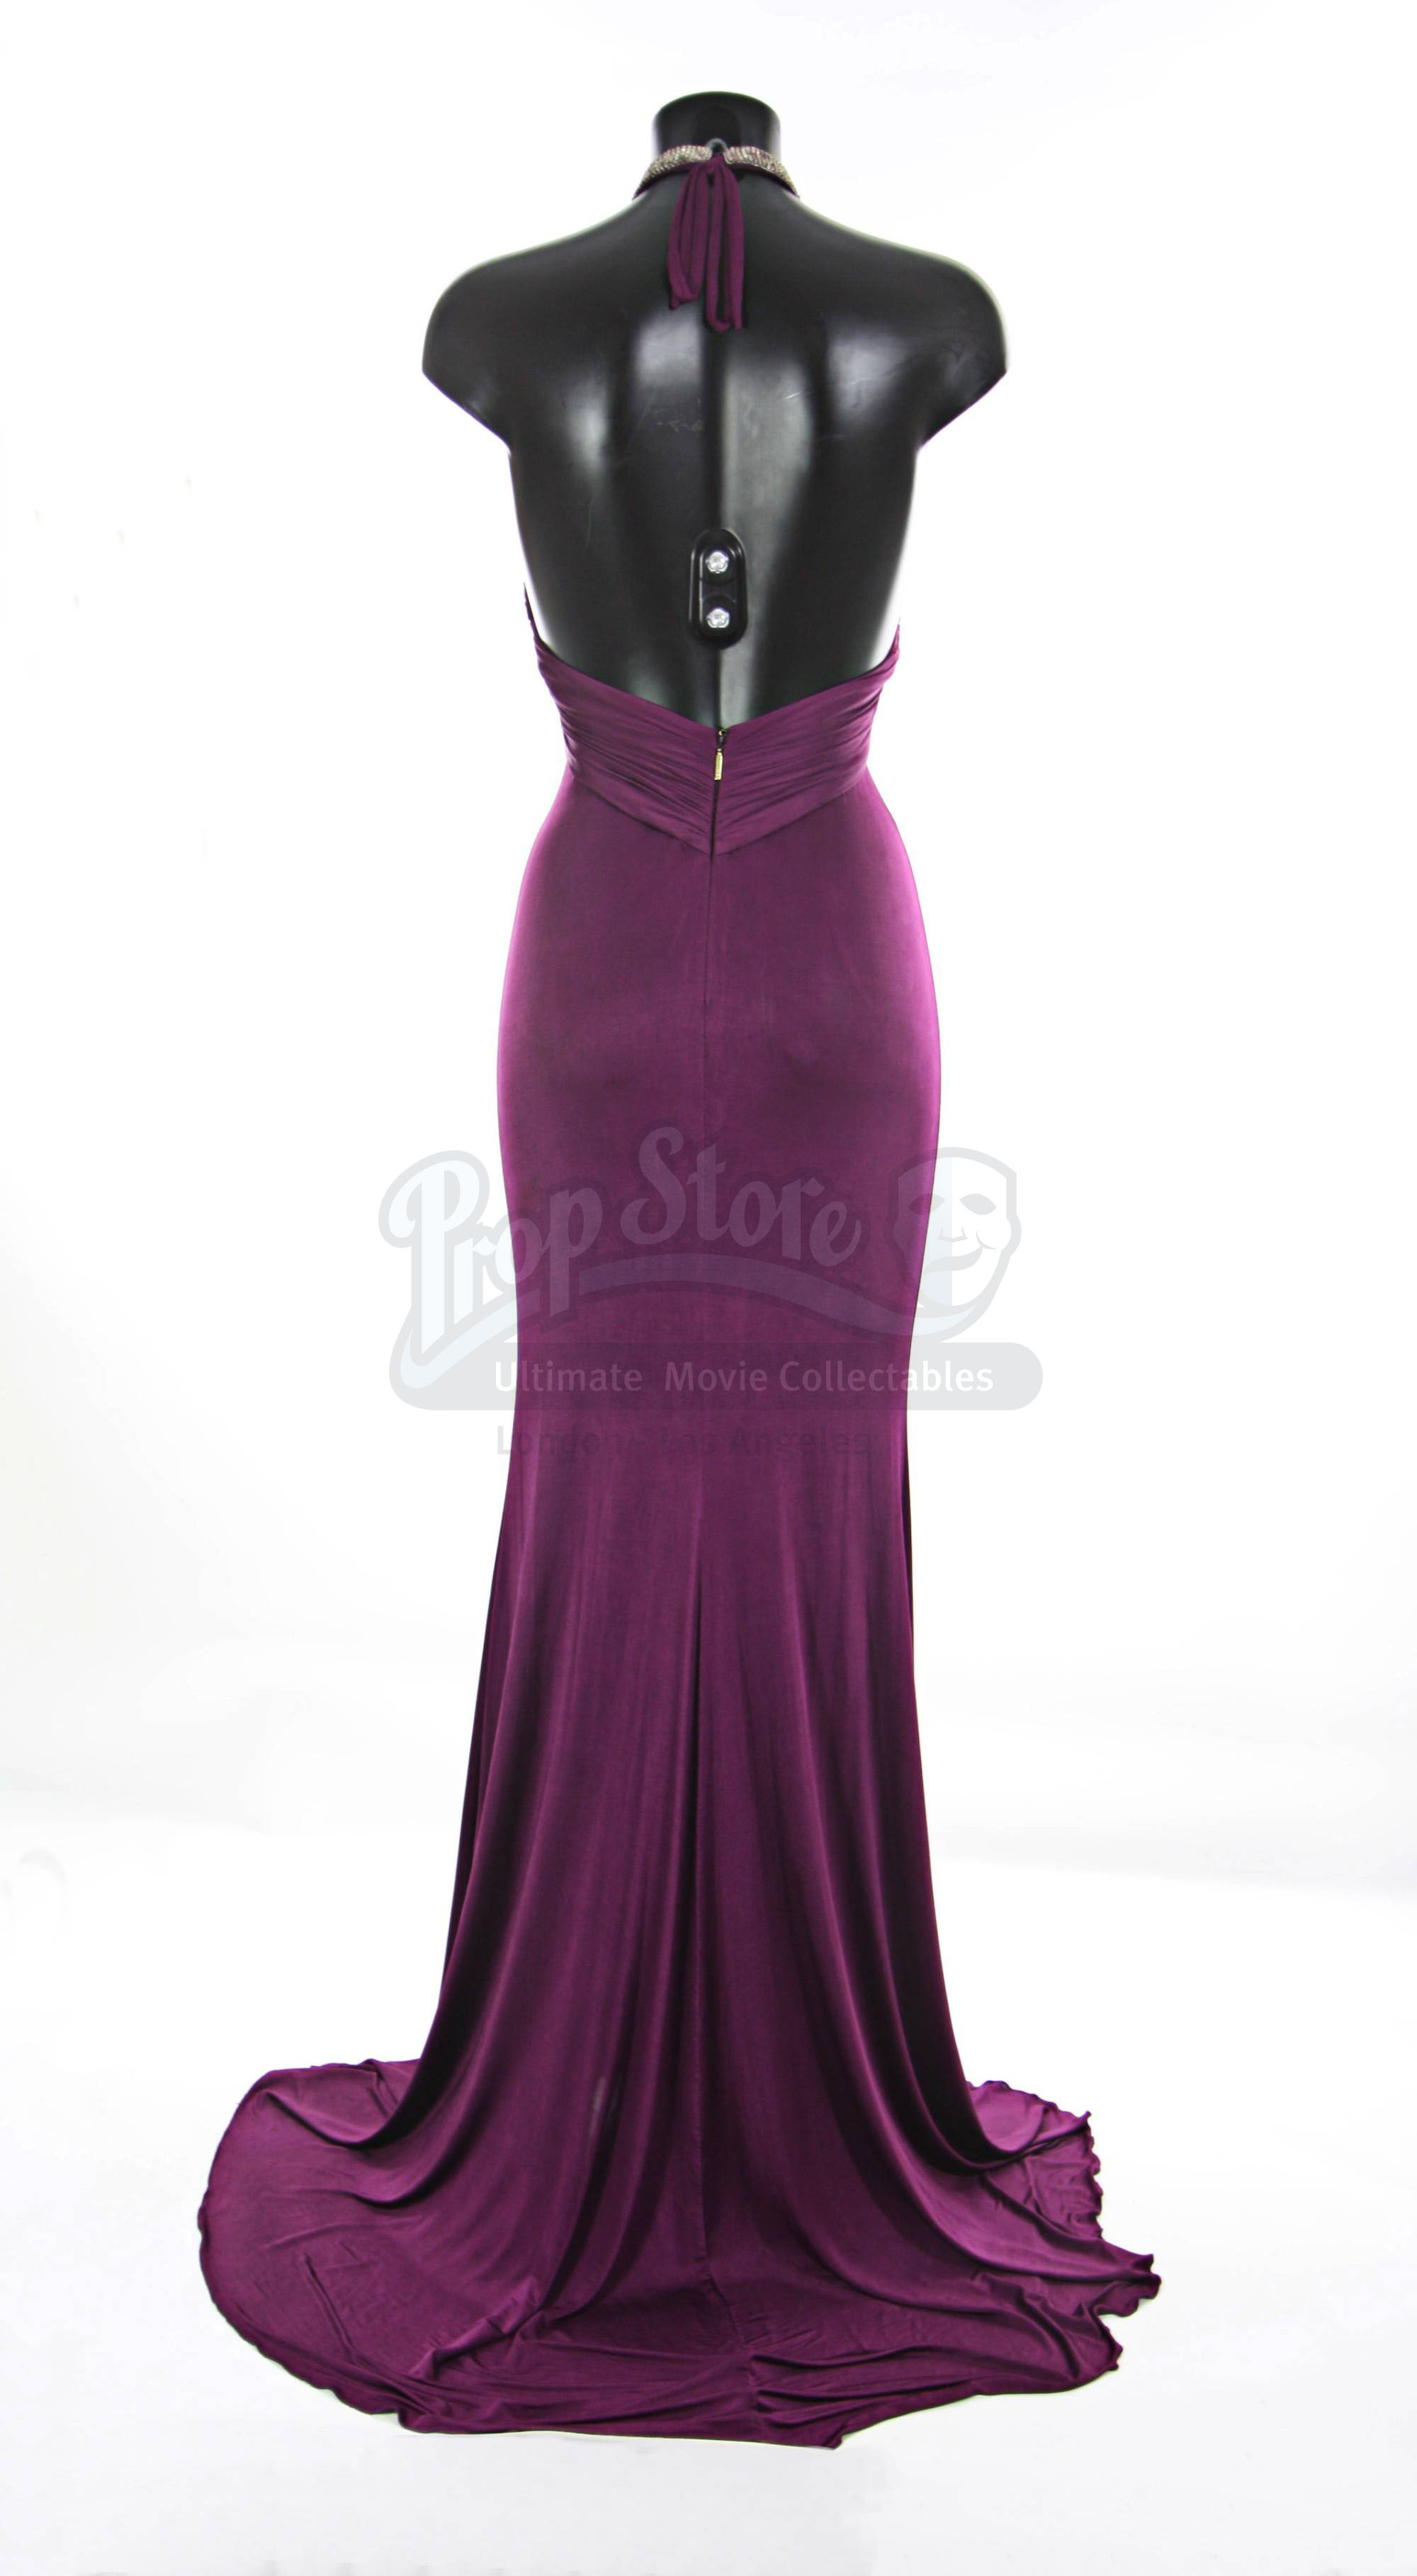 james bond casino royale dress